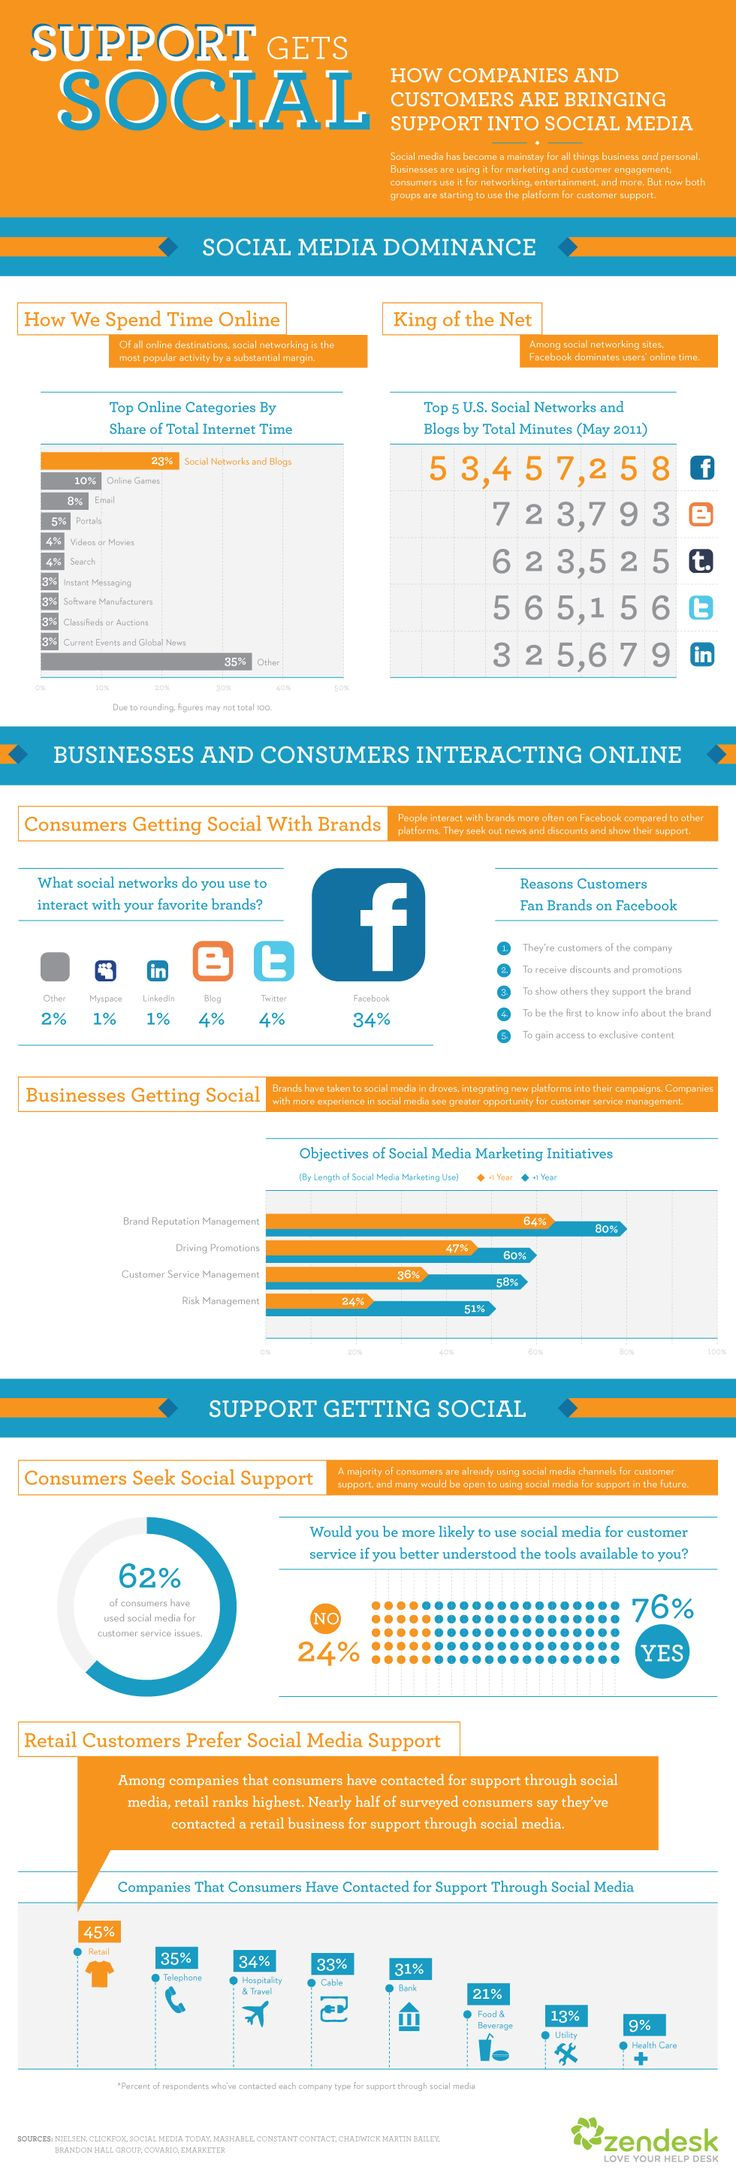 """Infog.Support gets social 10.31.111 Study shows 62% of consumers have used social media for customer support - """"Support gets Social"""""""